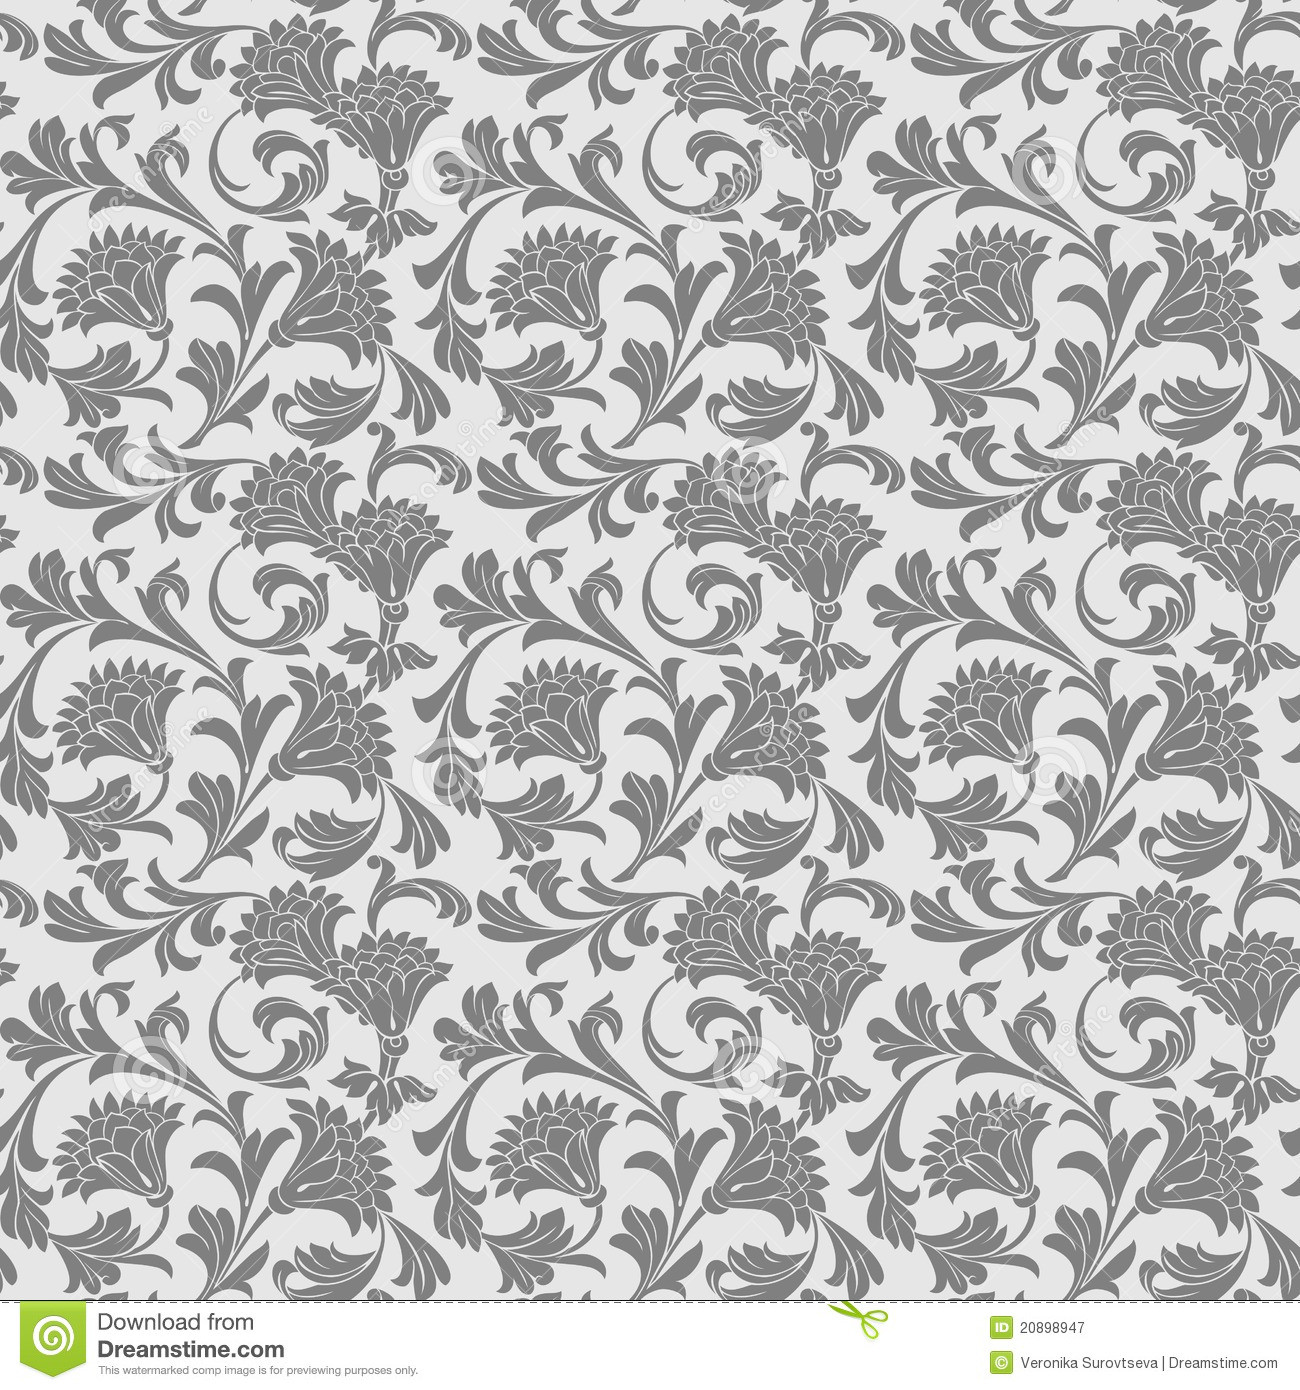 Antique wallpaper decor royalty free stock photography image 20898947 - Decoratie wallpaper eetkamer ...